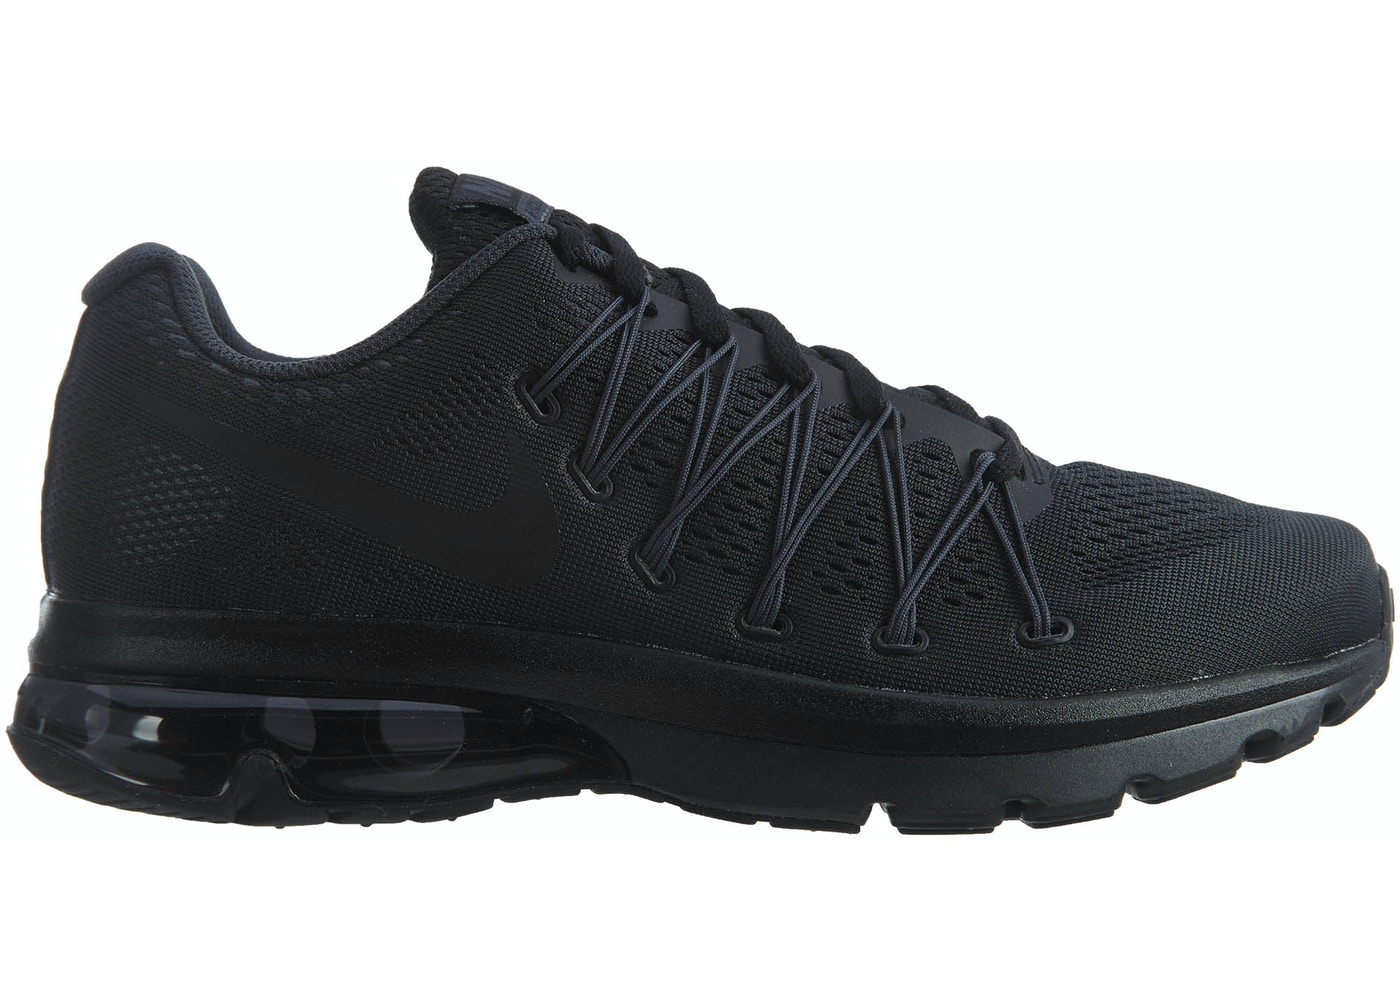 new style 17d7f 500a7 Air Max Excellerate 5 Black Black-Anthracite